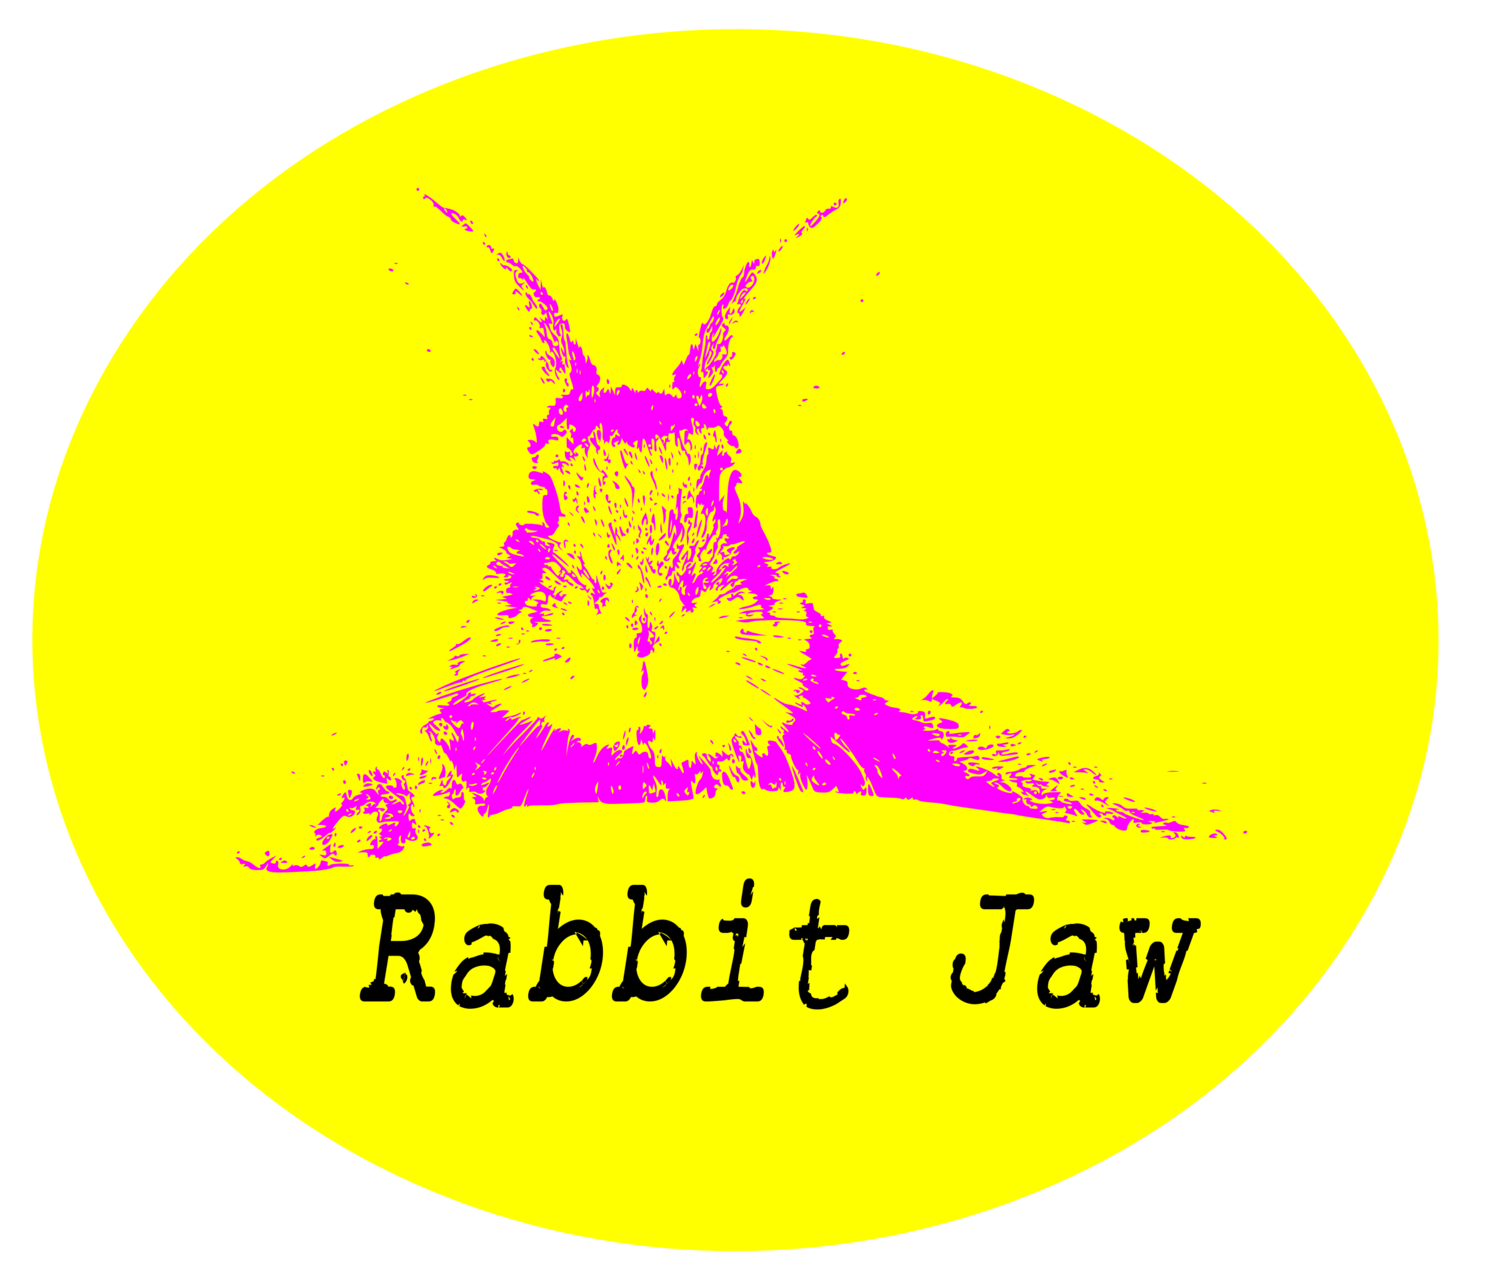 Rabbit Jaw